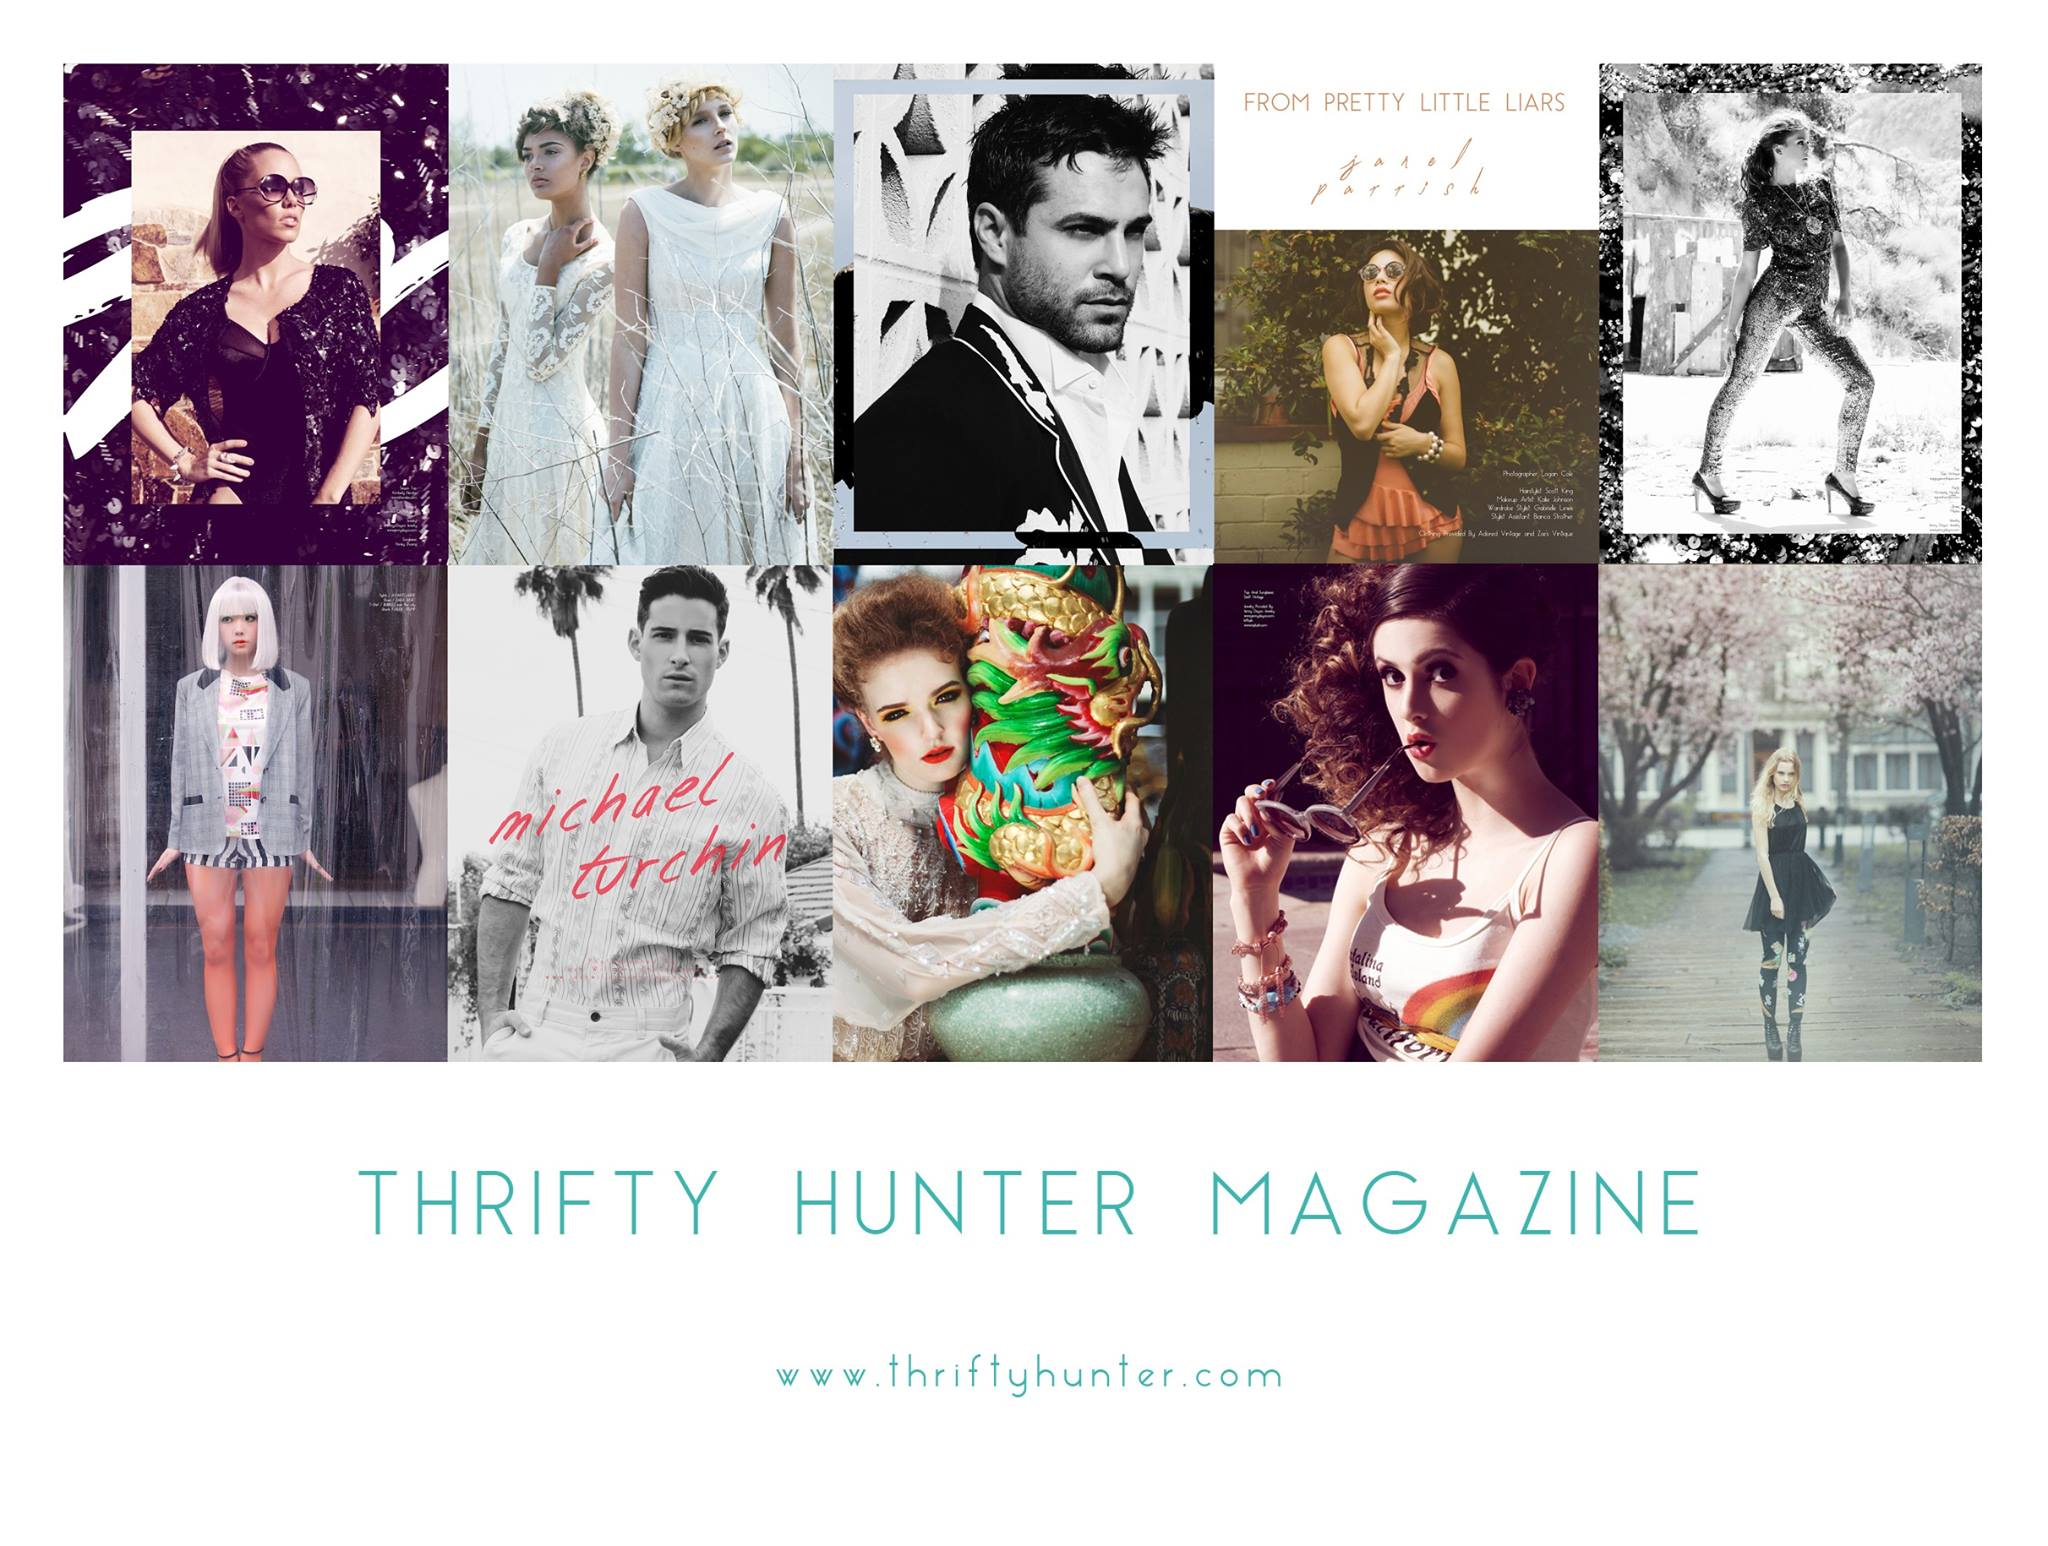 Thrifty Hunter Magazine